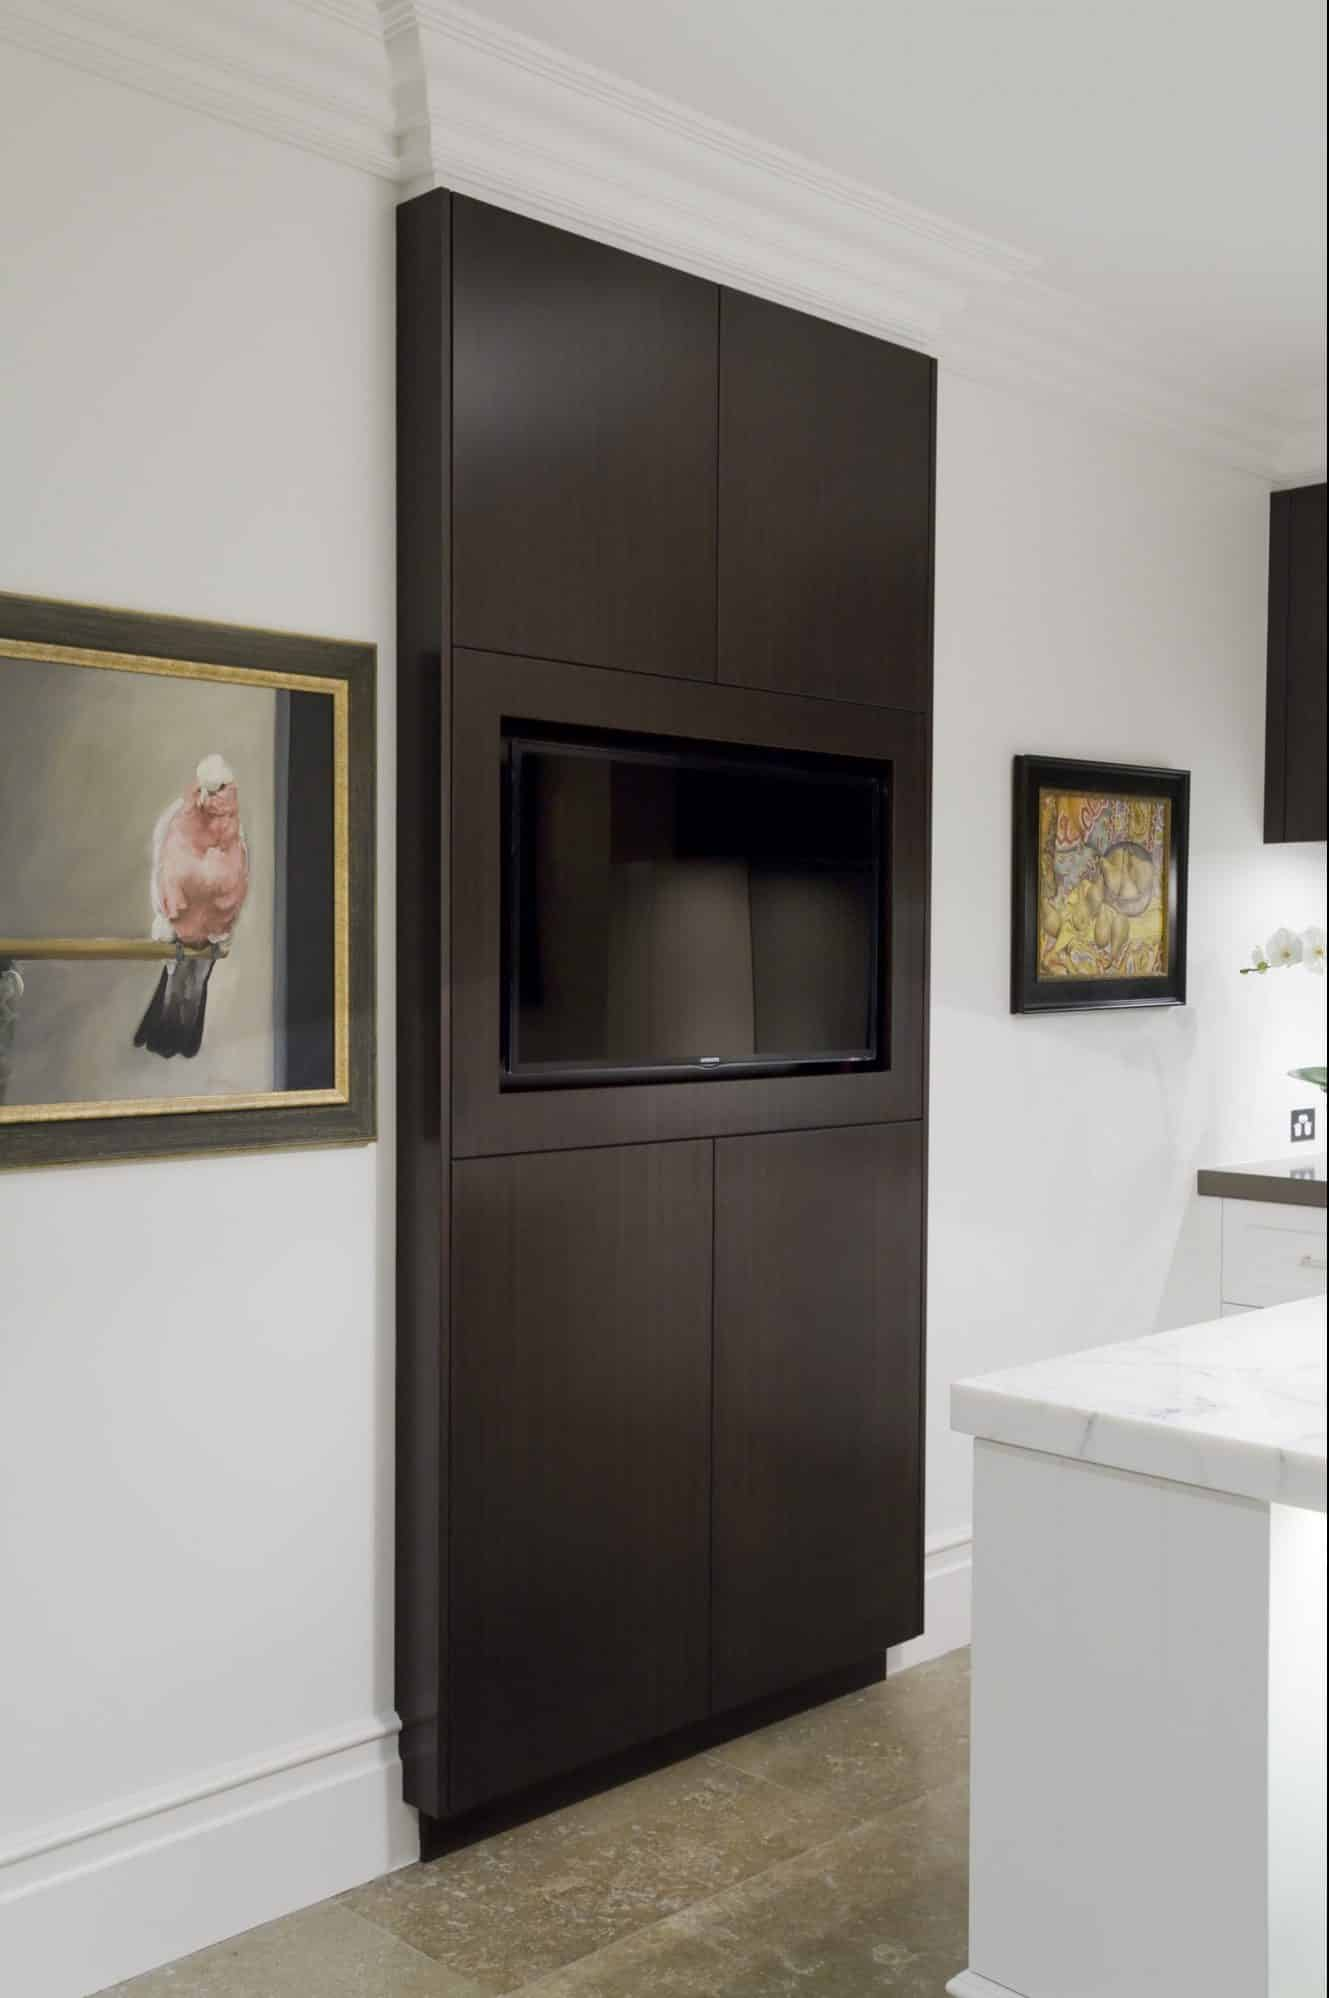 A TV is incorporated into the design of the kitchen